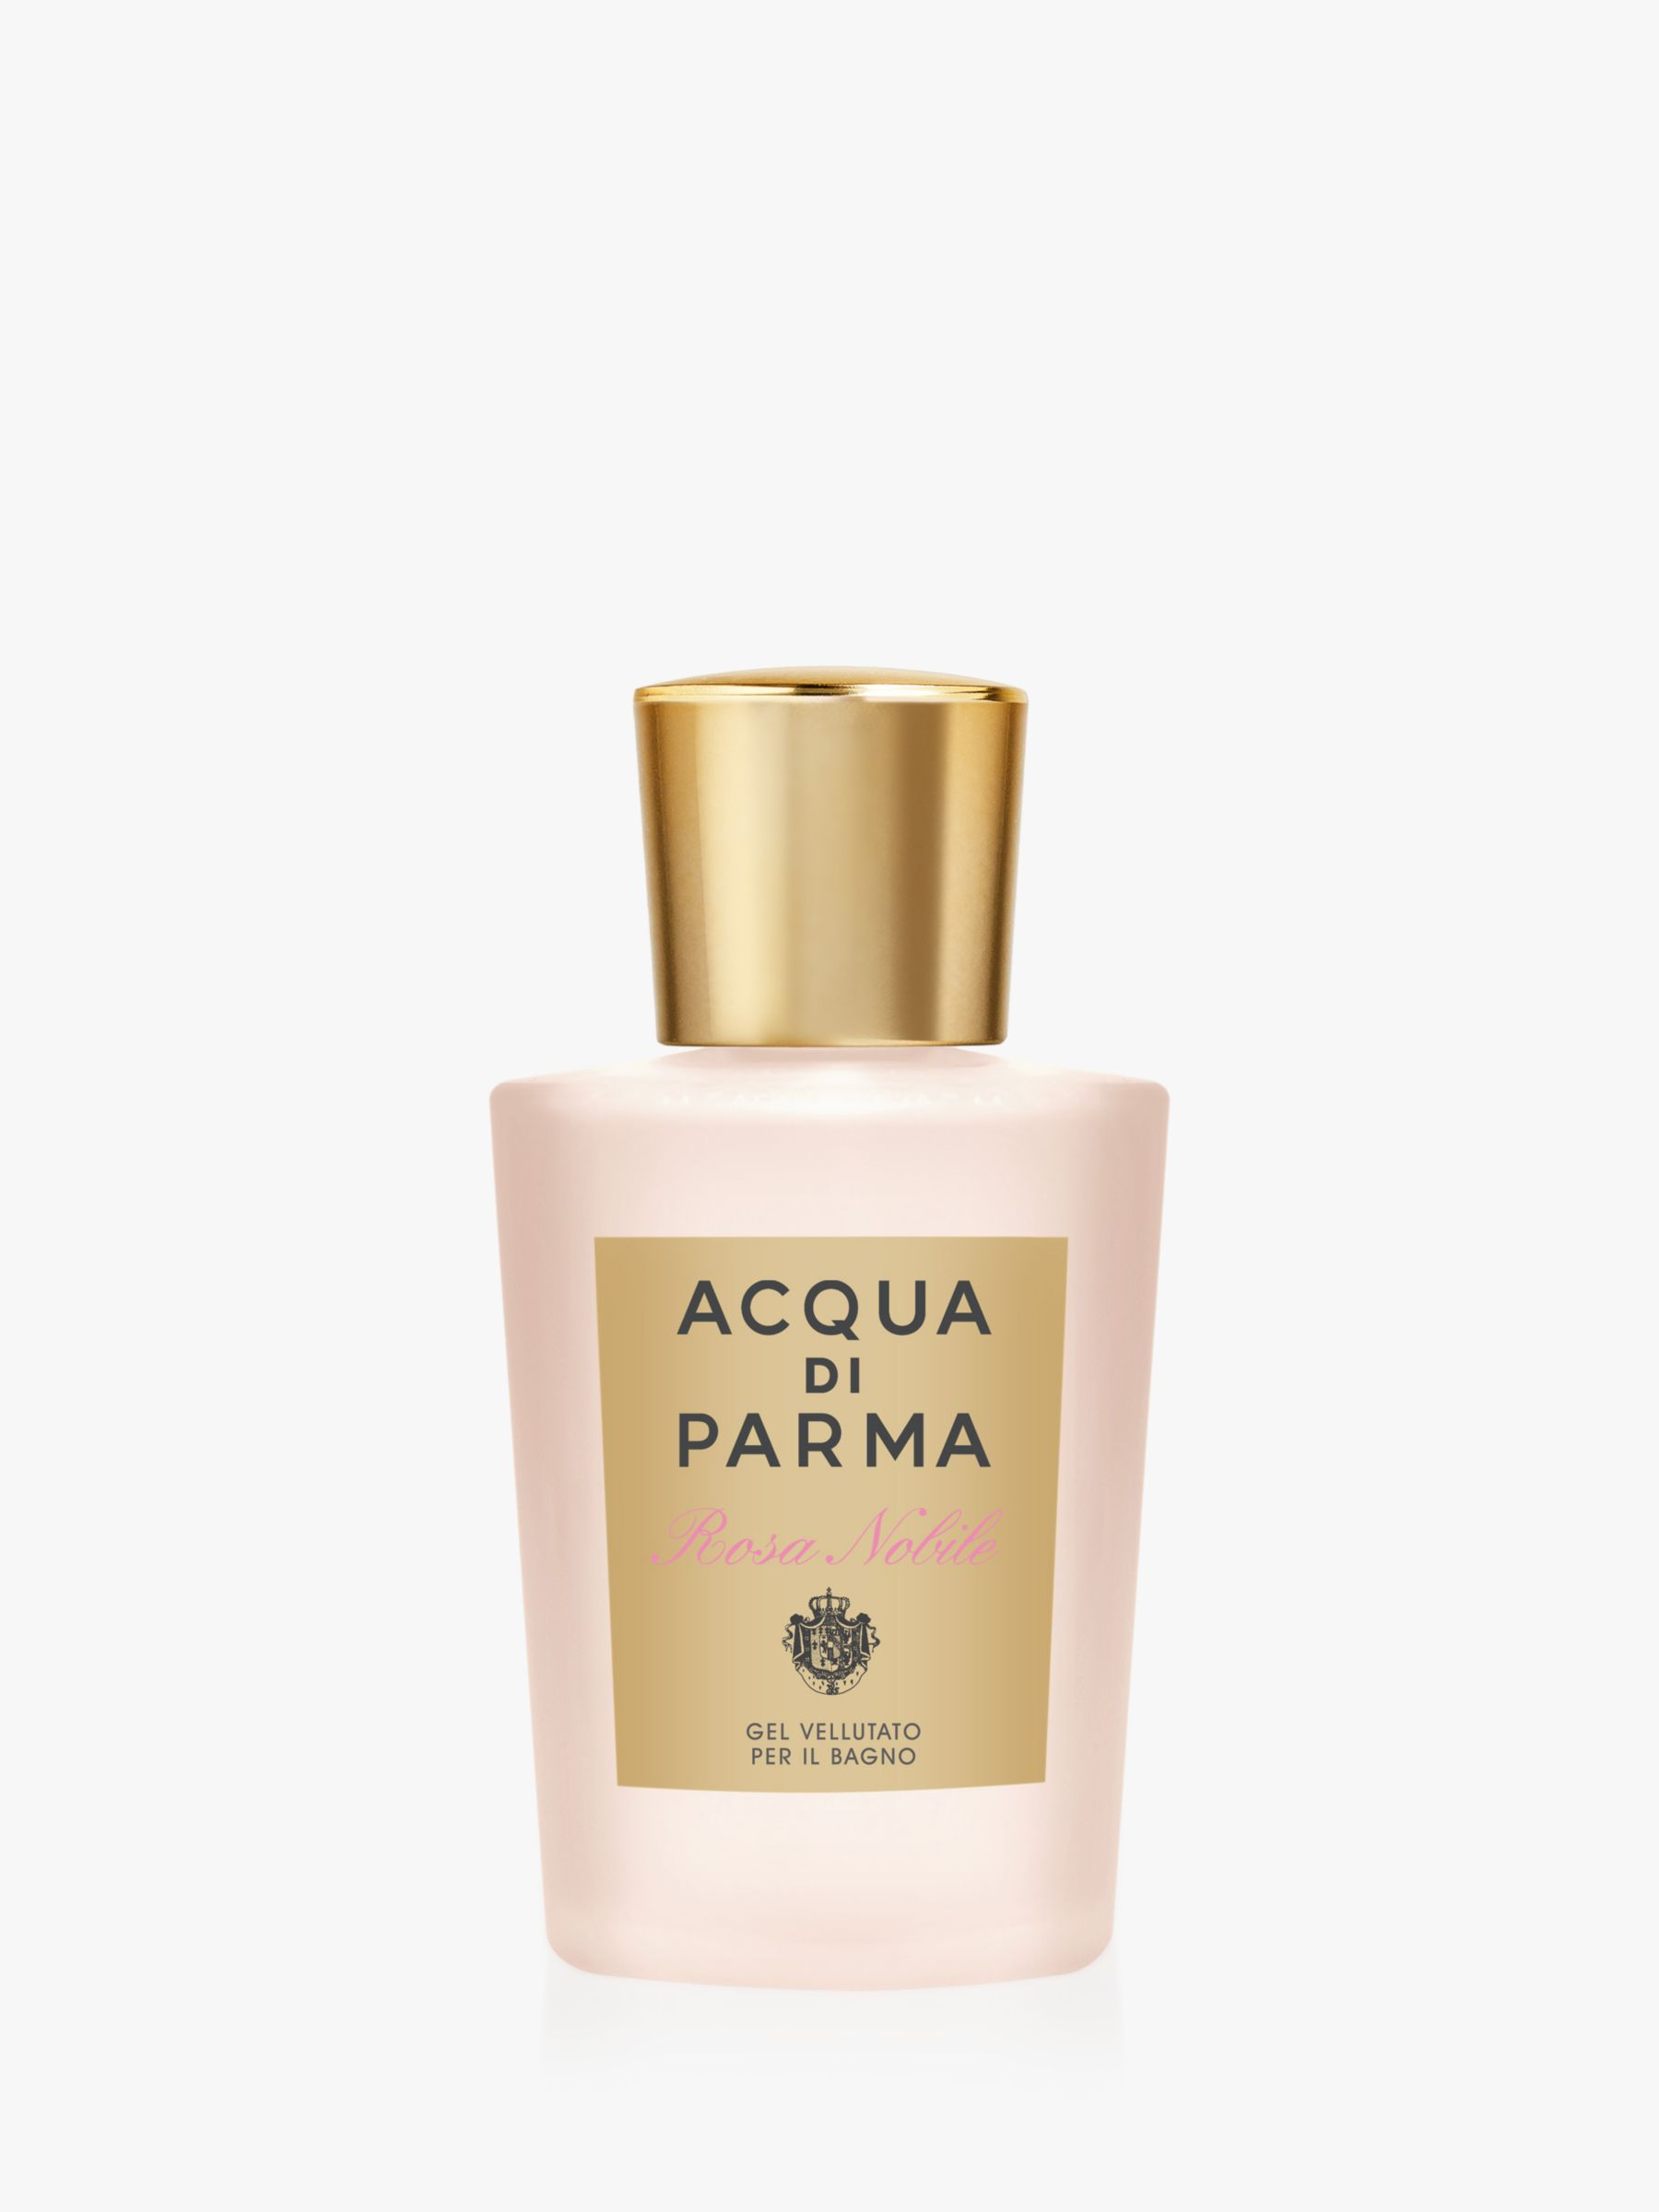 Acqua Di Parma Acqua Di Parma Rosa Nobile Shower Gel, 200ml